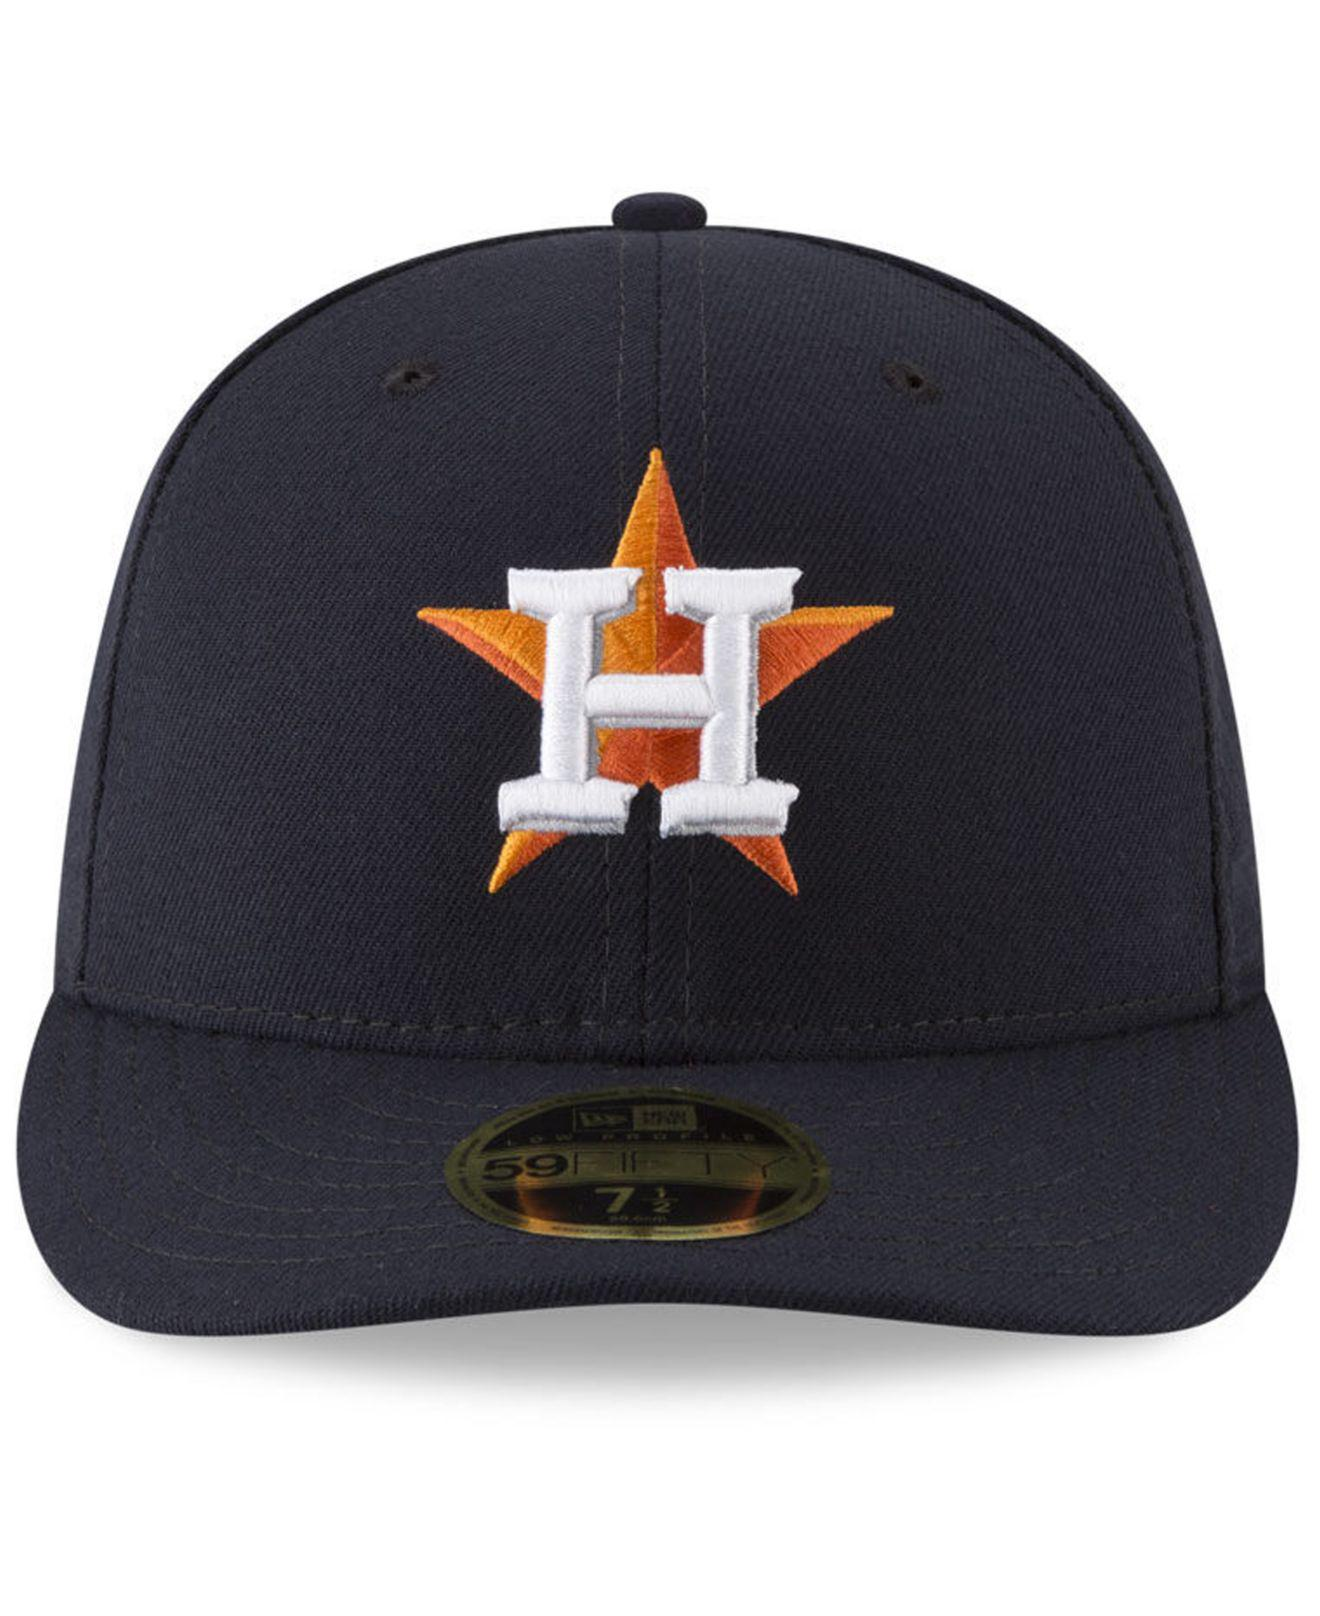 half off 4f23c 4efd5 ... san francisco giants reverse c dub 59fifty fitted cap 9f34f ecdd6   where can i buy lyst ktz houston astros 9 11 memorial low profile 59fifty  fitted cap